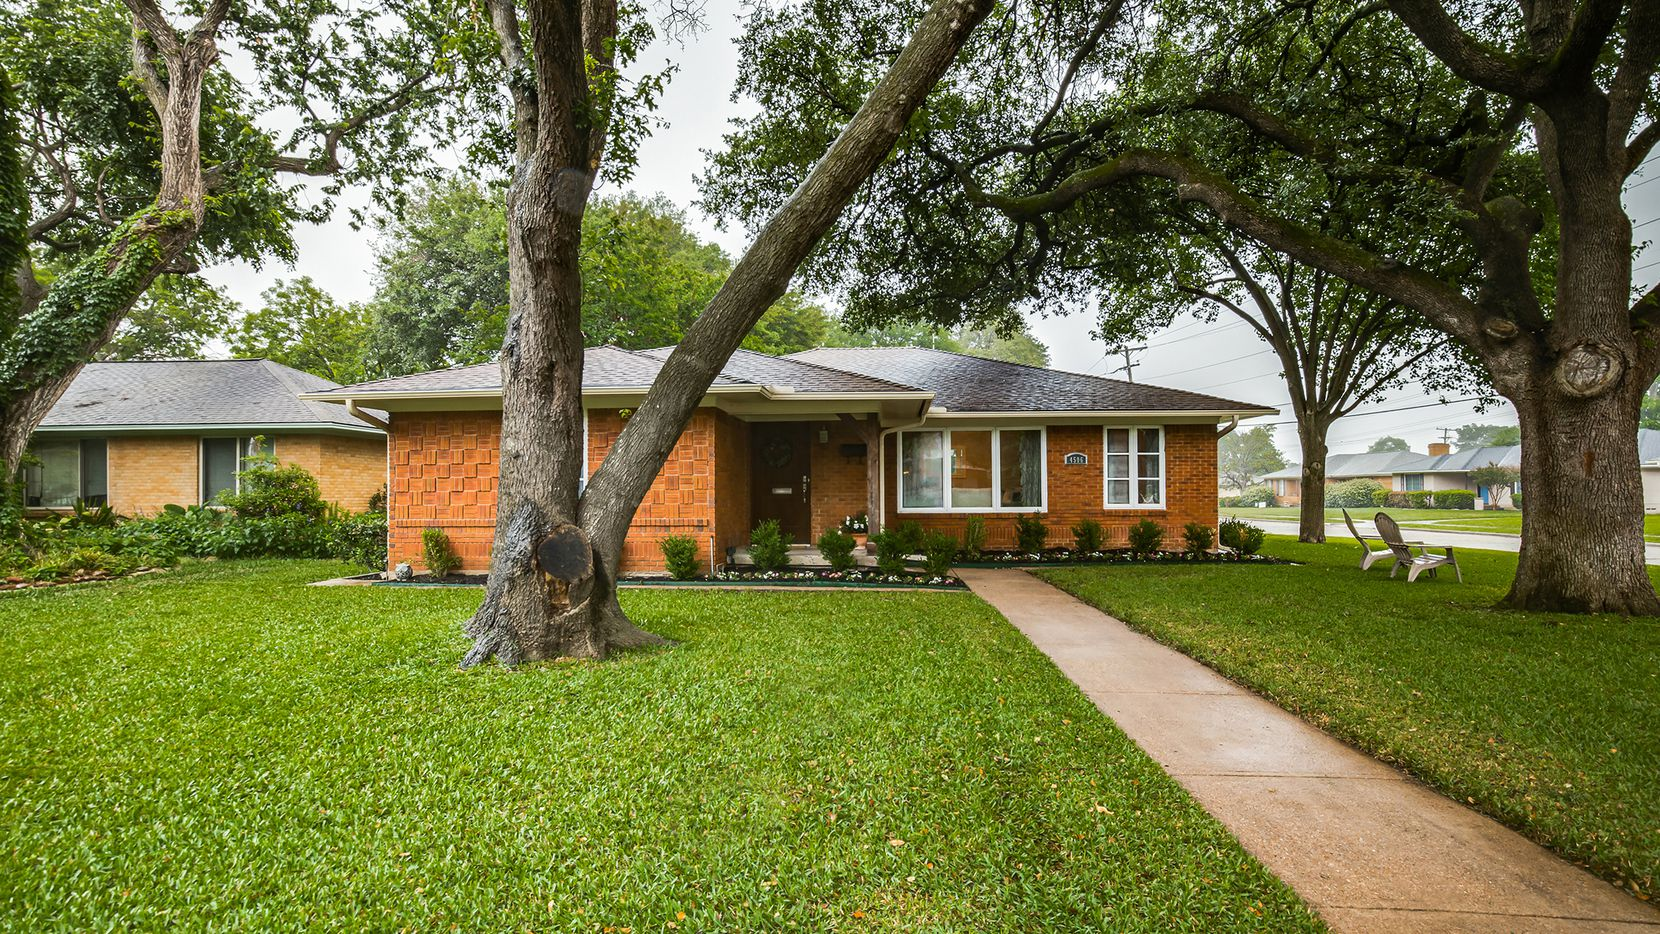 The two-bedroom home at 4506 Saint Landry Drive in Lakewood features numerous recent updates.